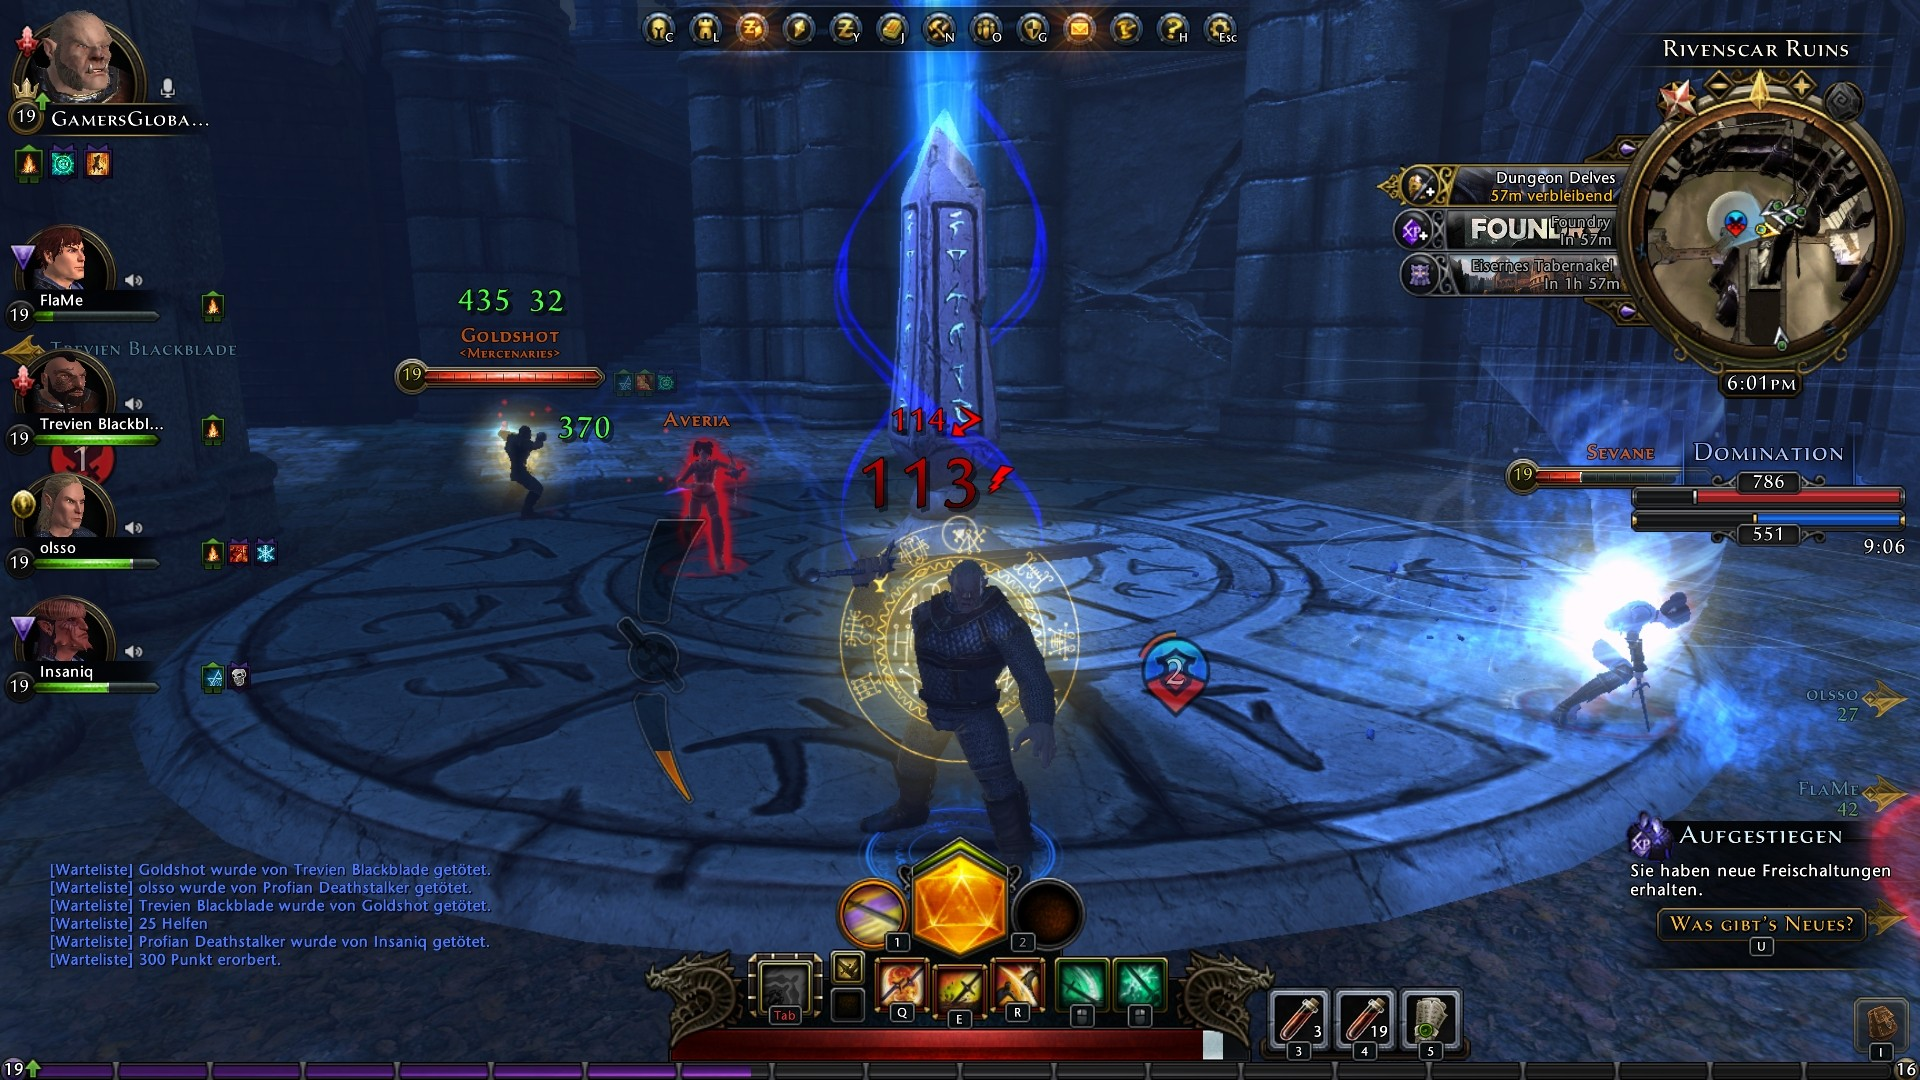 Neverwinter online release date Swords of Chult Update Scheduled for Release on October 24th -